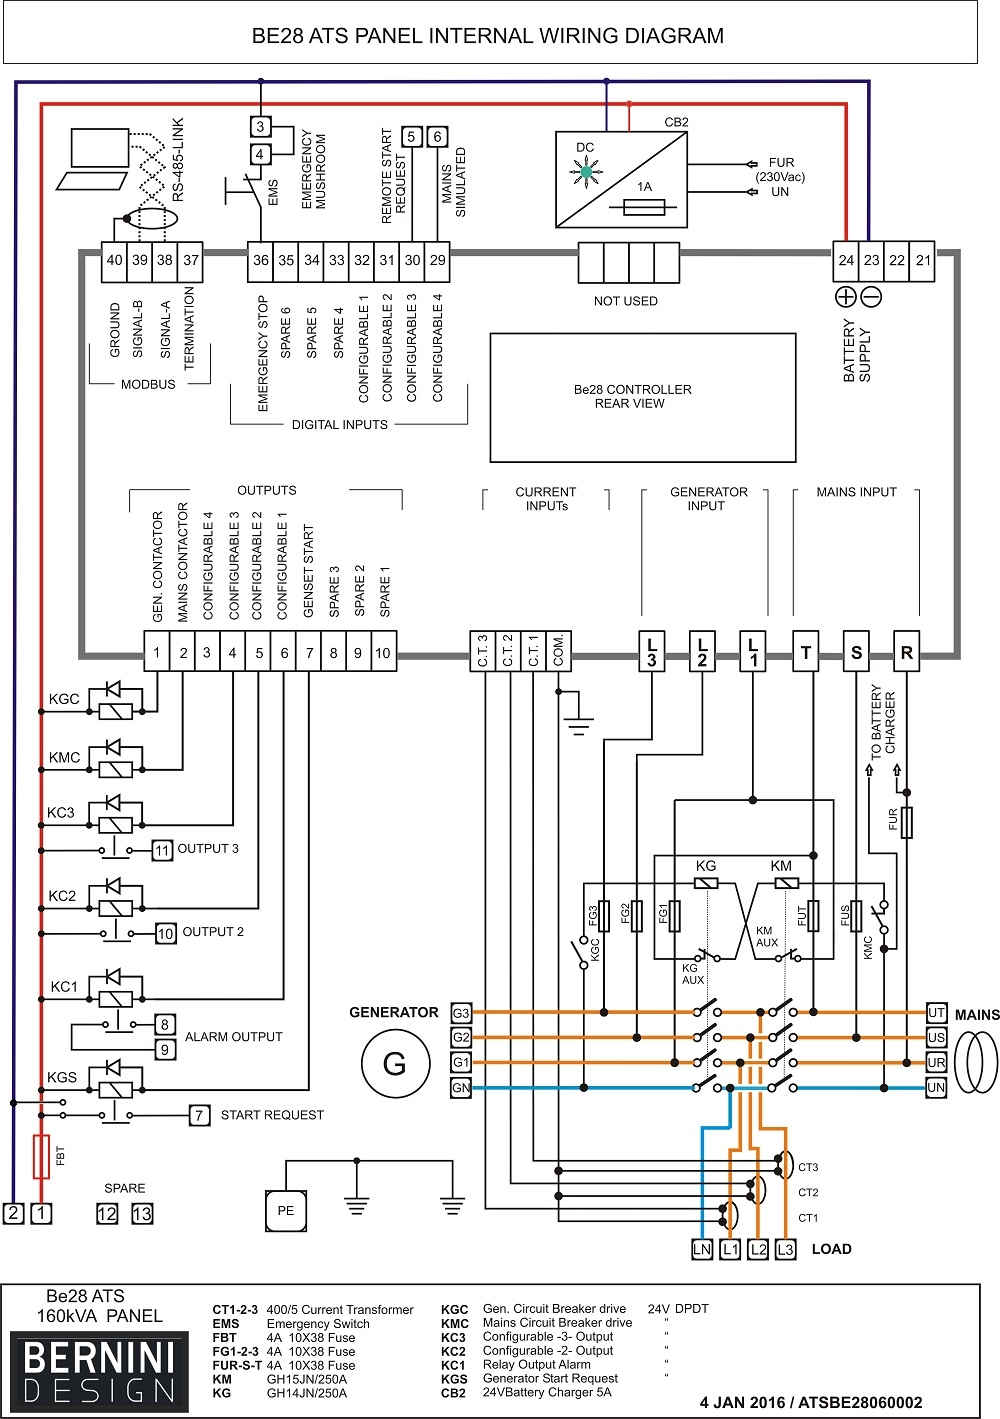 generac whole house generator wiring diagram for car stereo pioneer transfer switch free